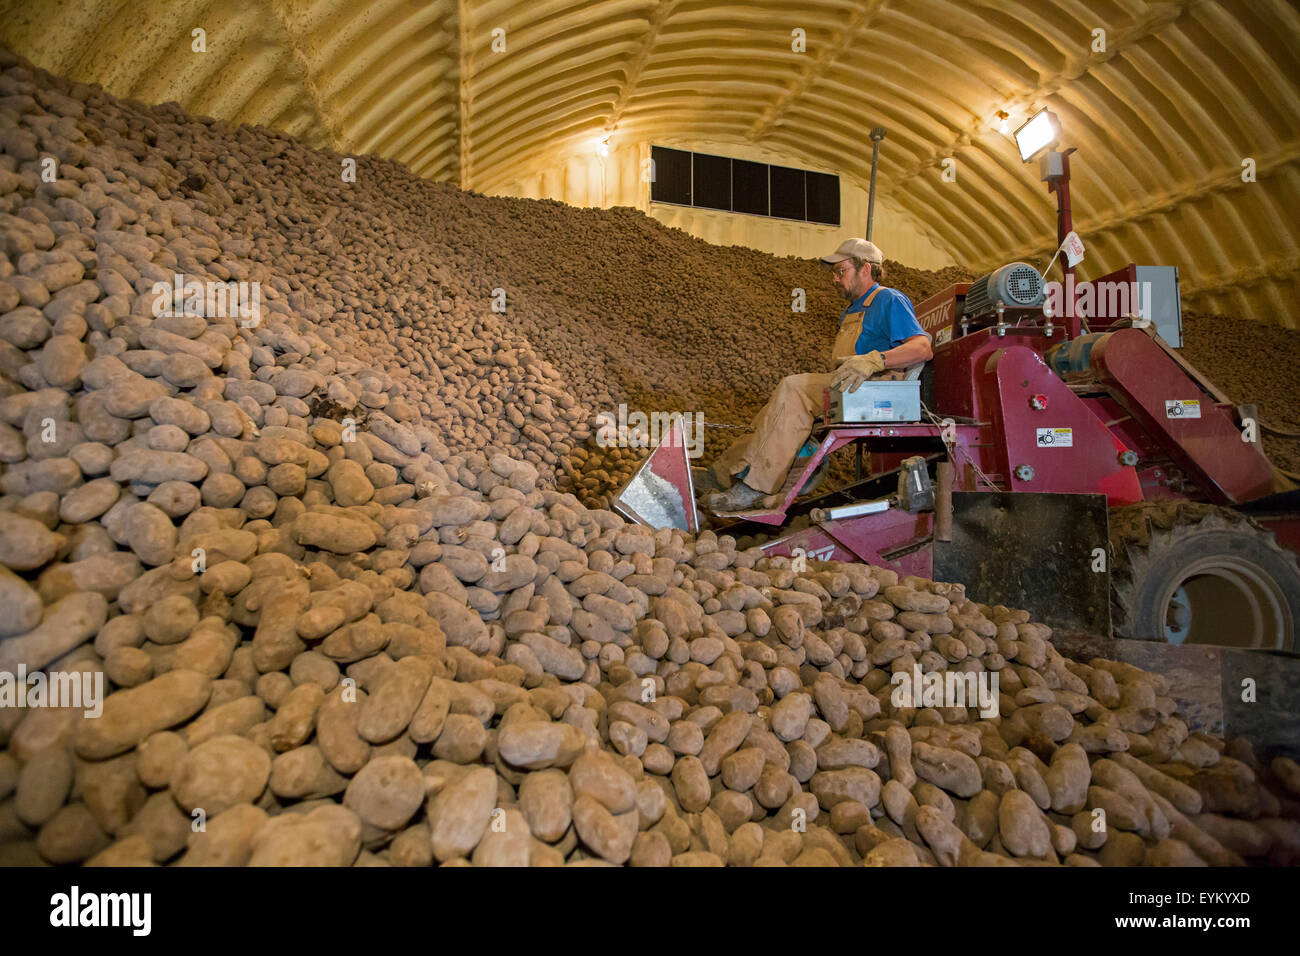 Shelley Idaho - A worker loads potatoes from a farmu0027s potato cellar for delivery to a potato packing plant. & Shelley Idaho - A worker loads potatoes from a farmu0027s potato cellar ...